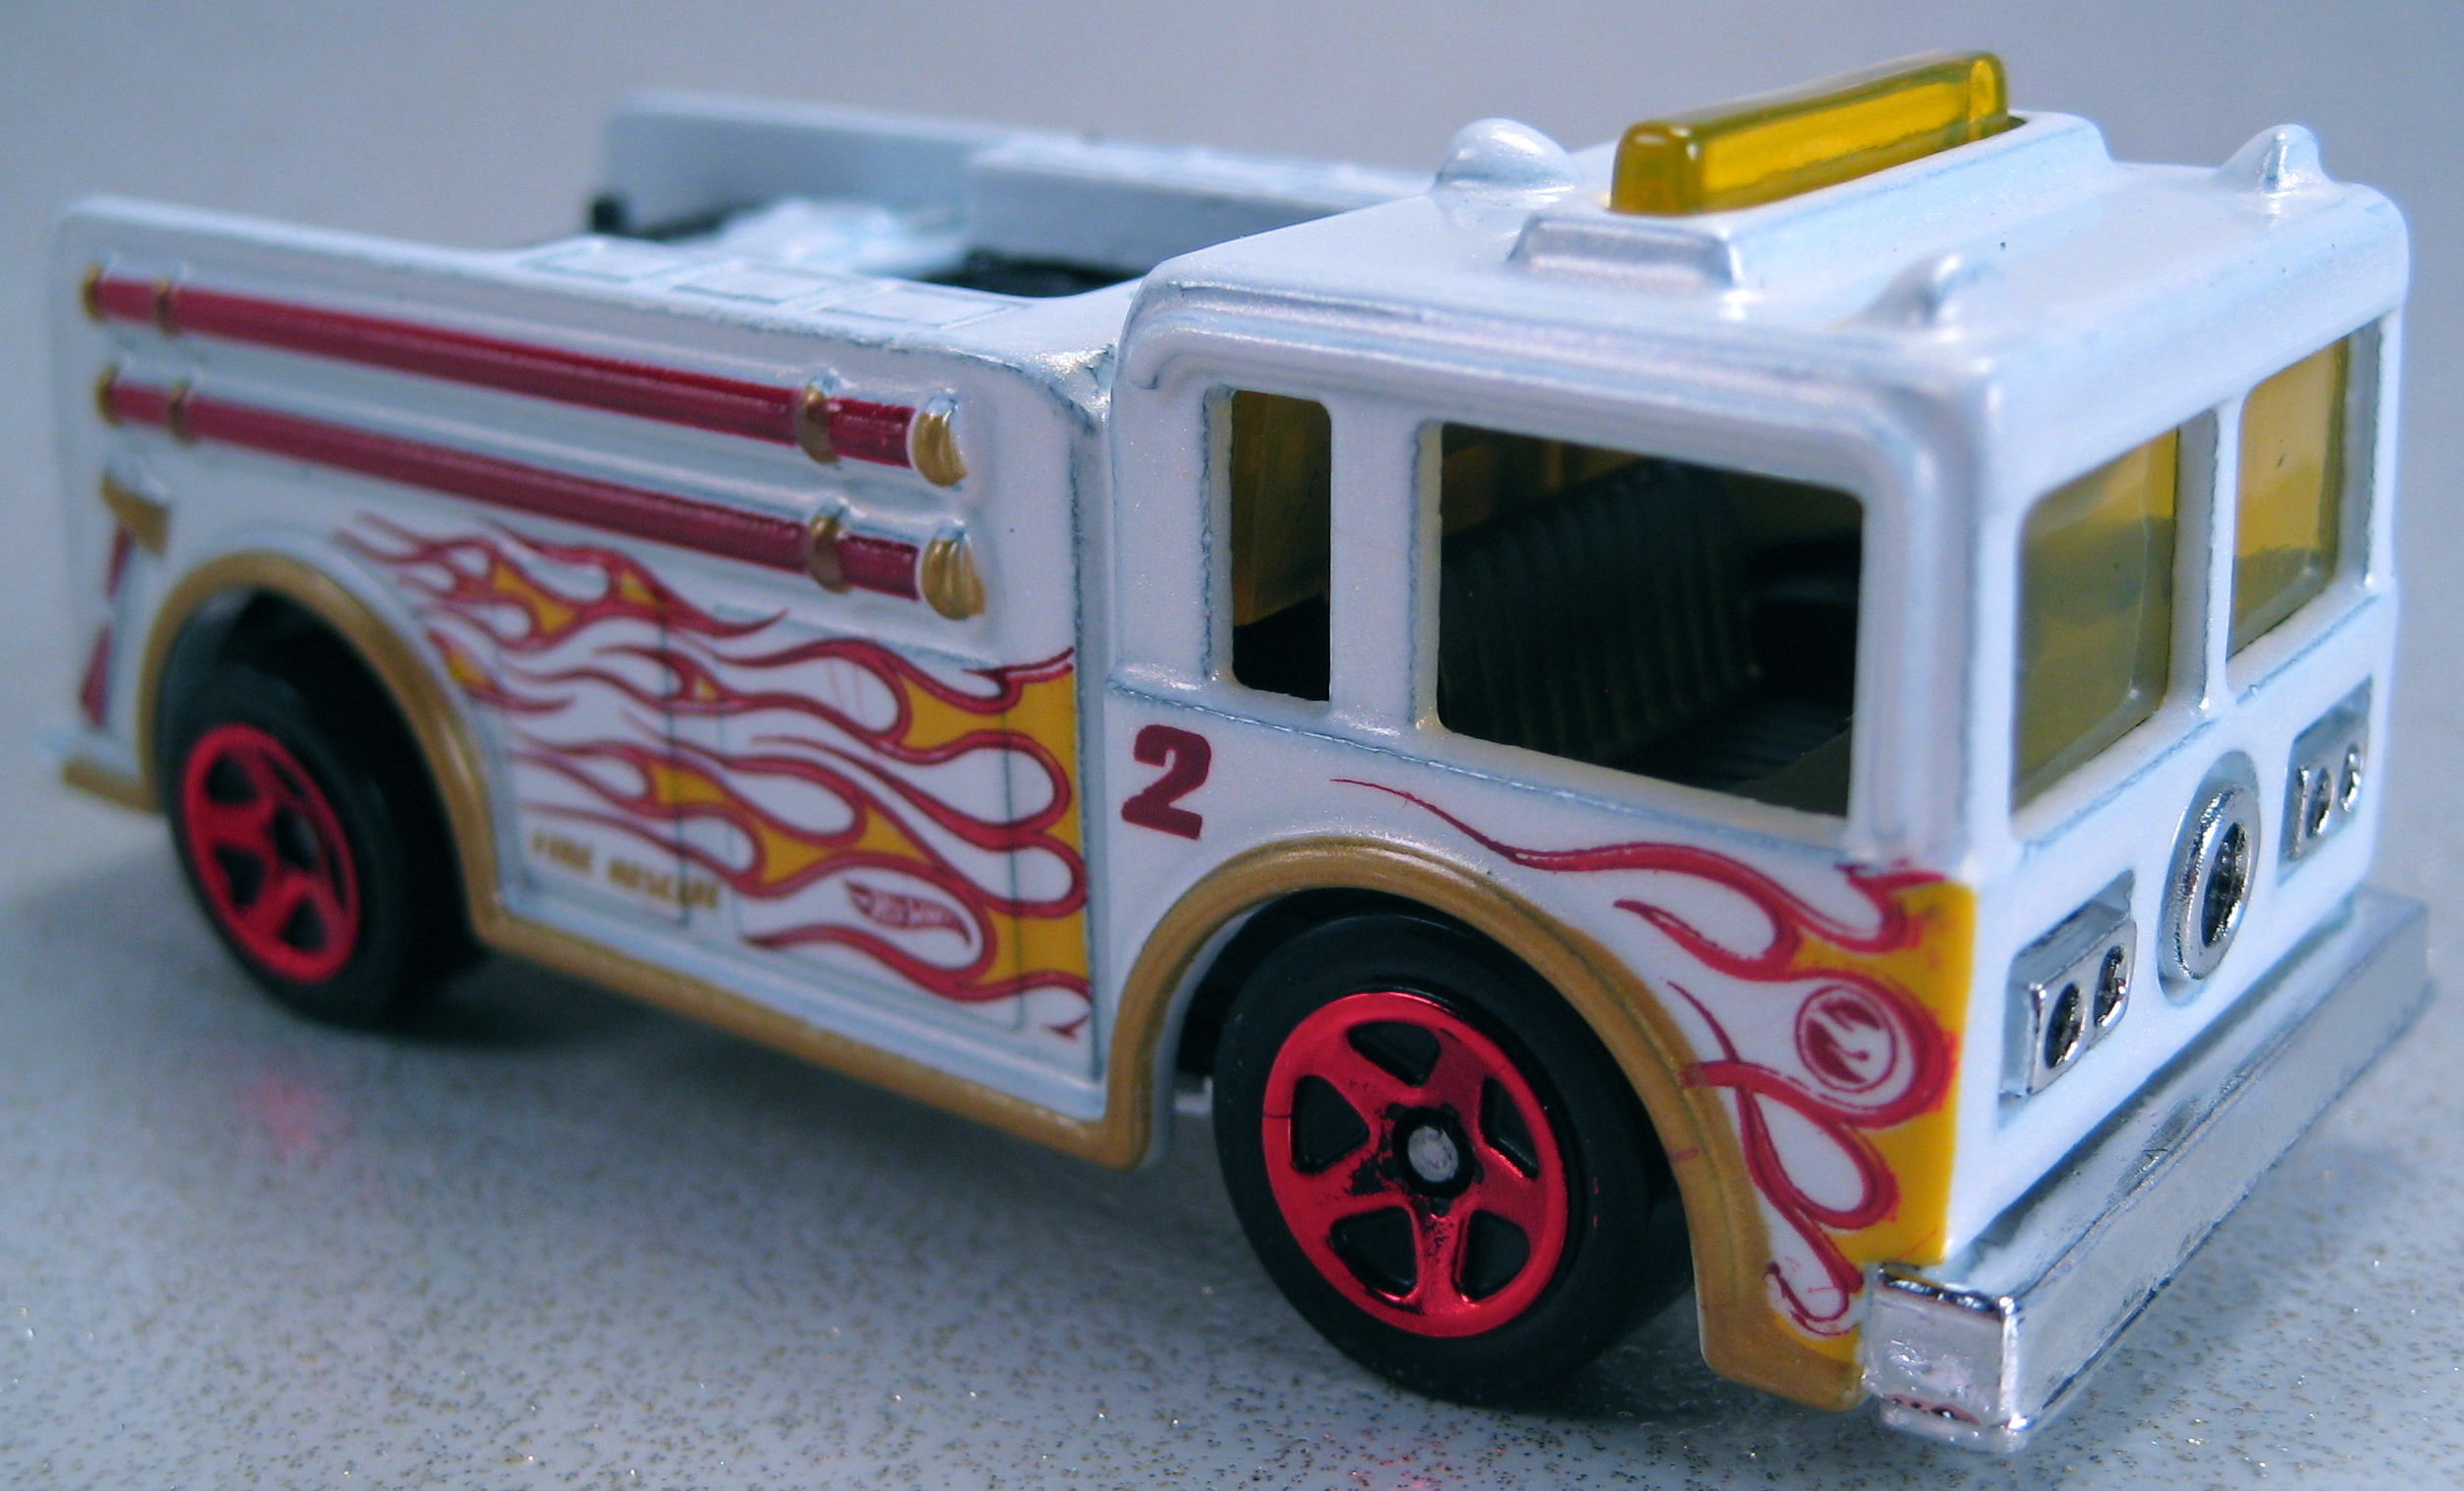 Contemporary Manufacture Toys Hobbies Hot Wheels Treasure Hunts Fire Eater